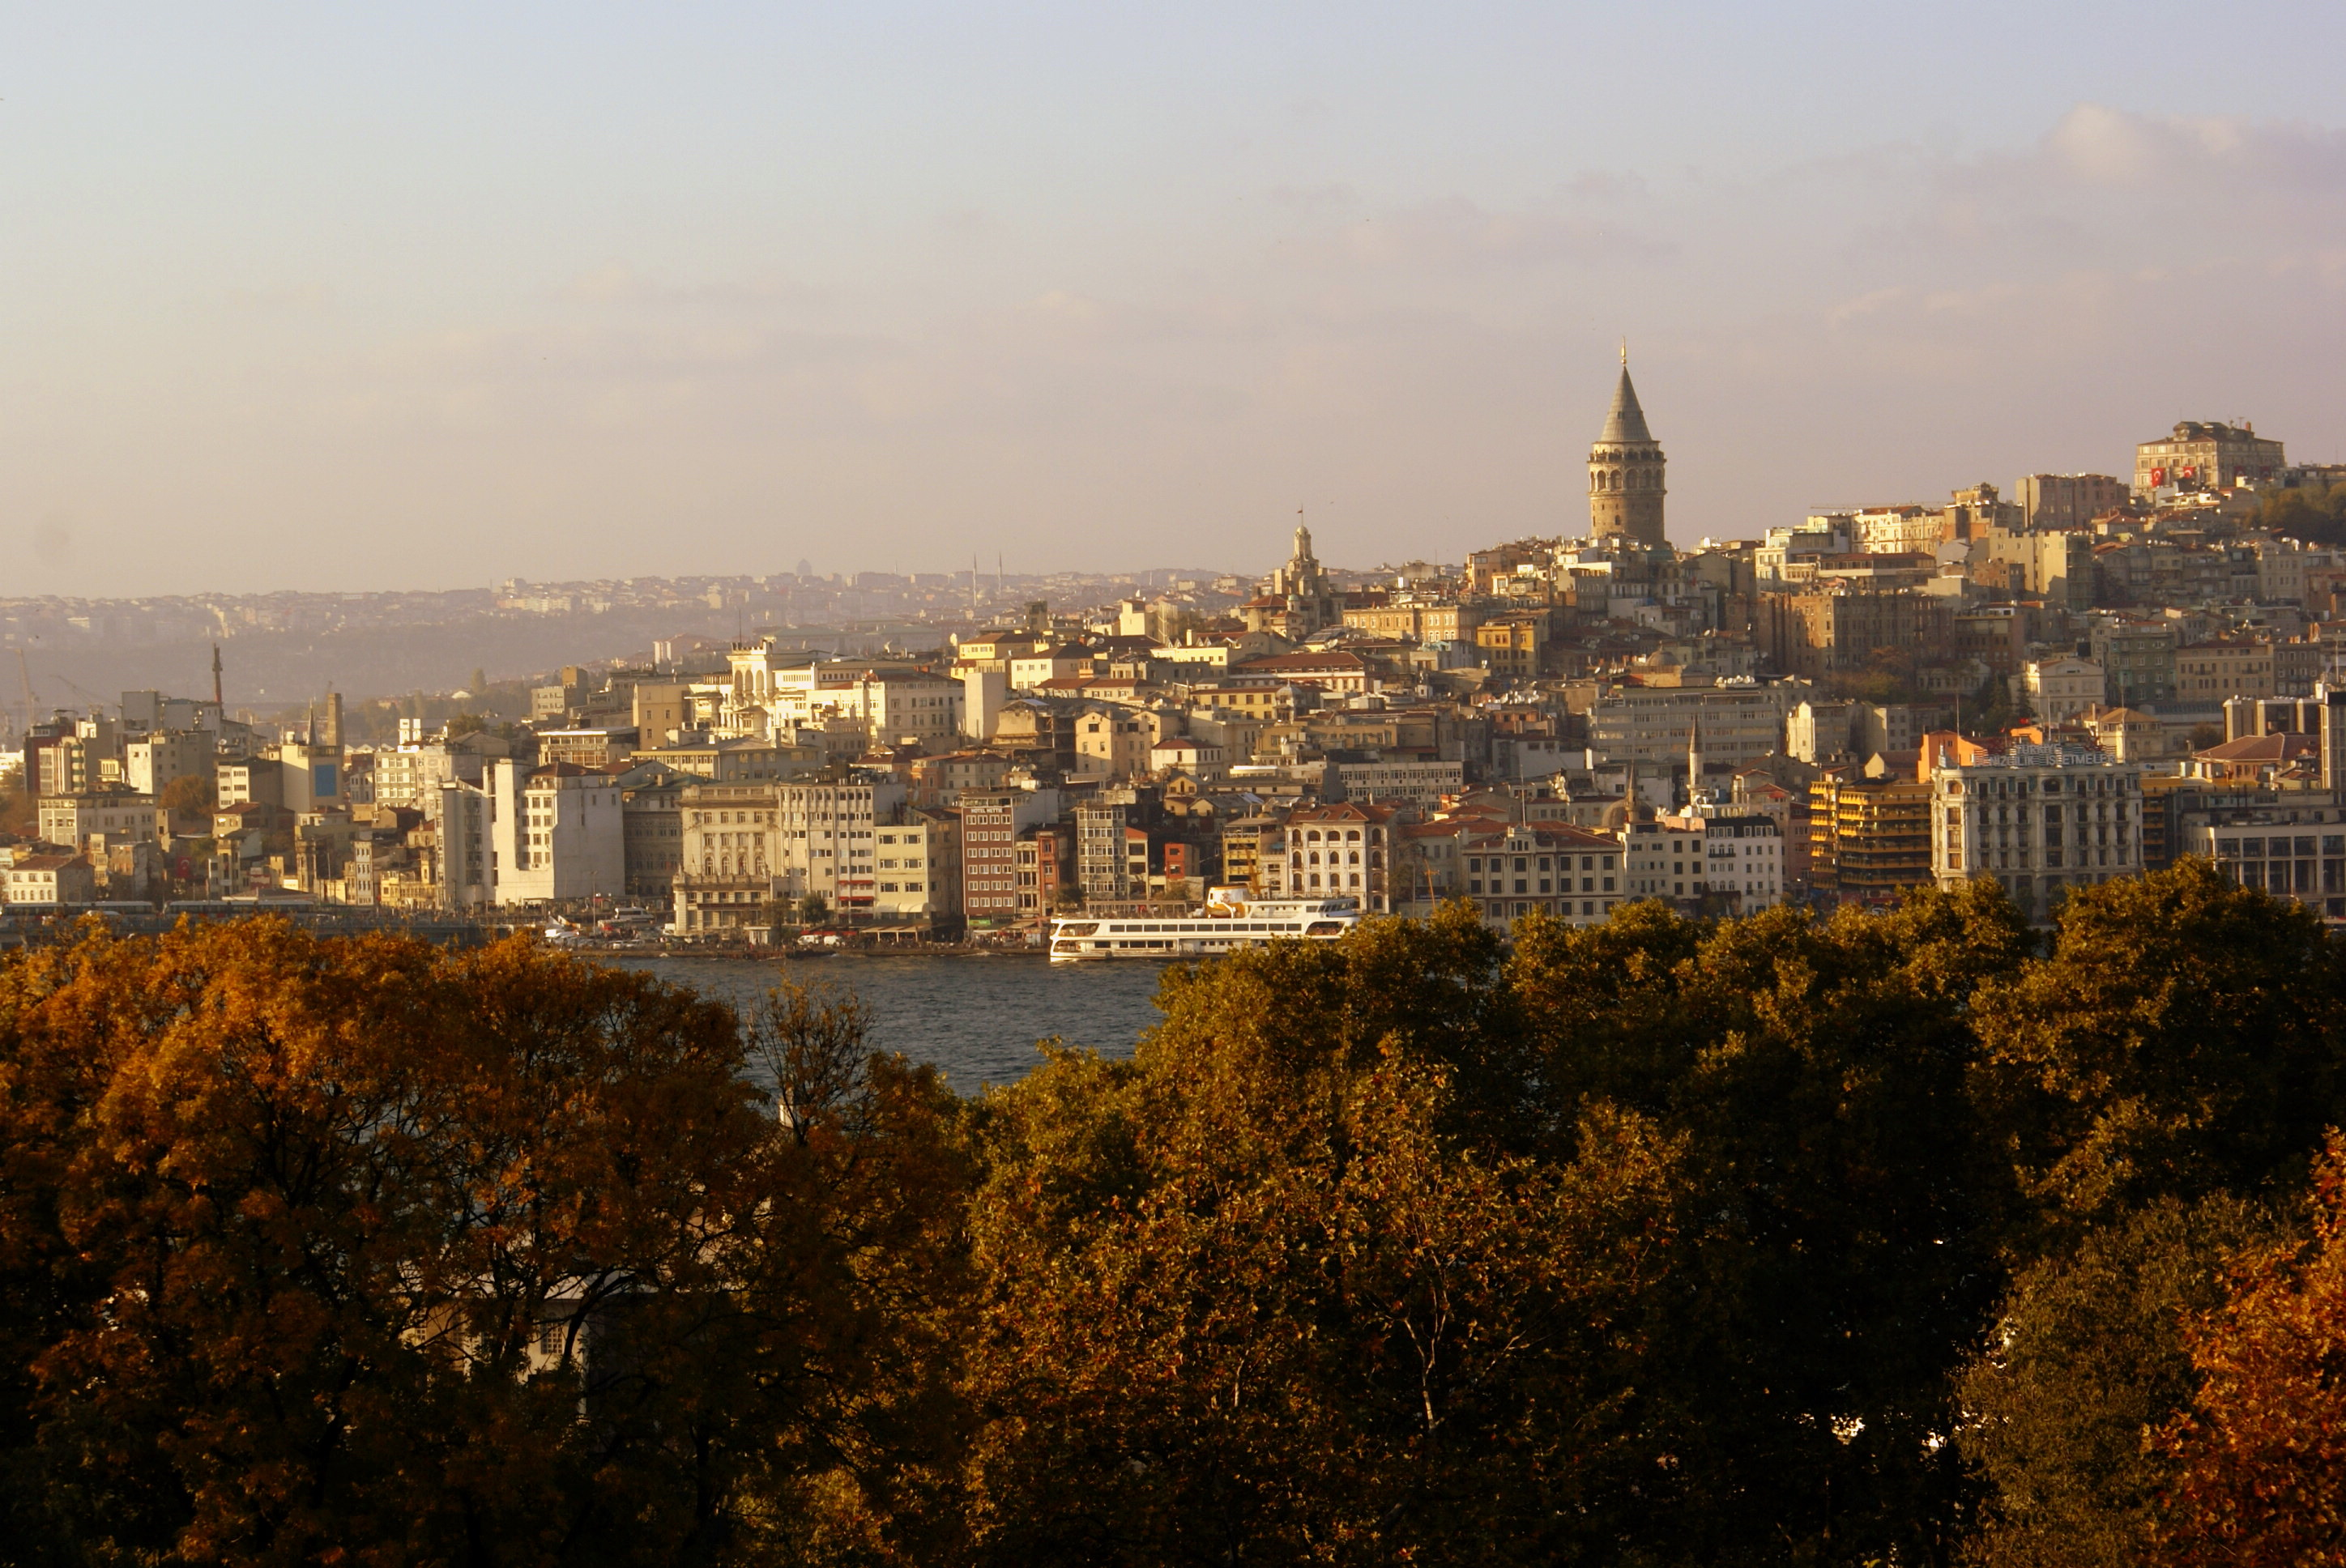 Istanbul from Baghdad Pavilion at Topkapi Palace